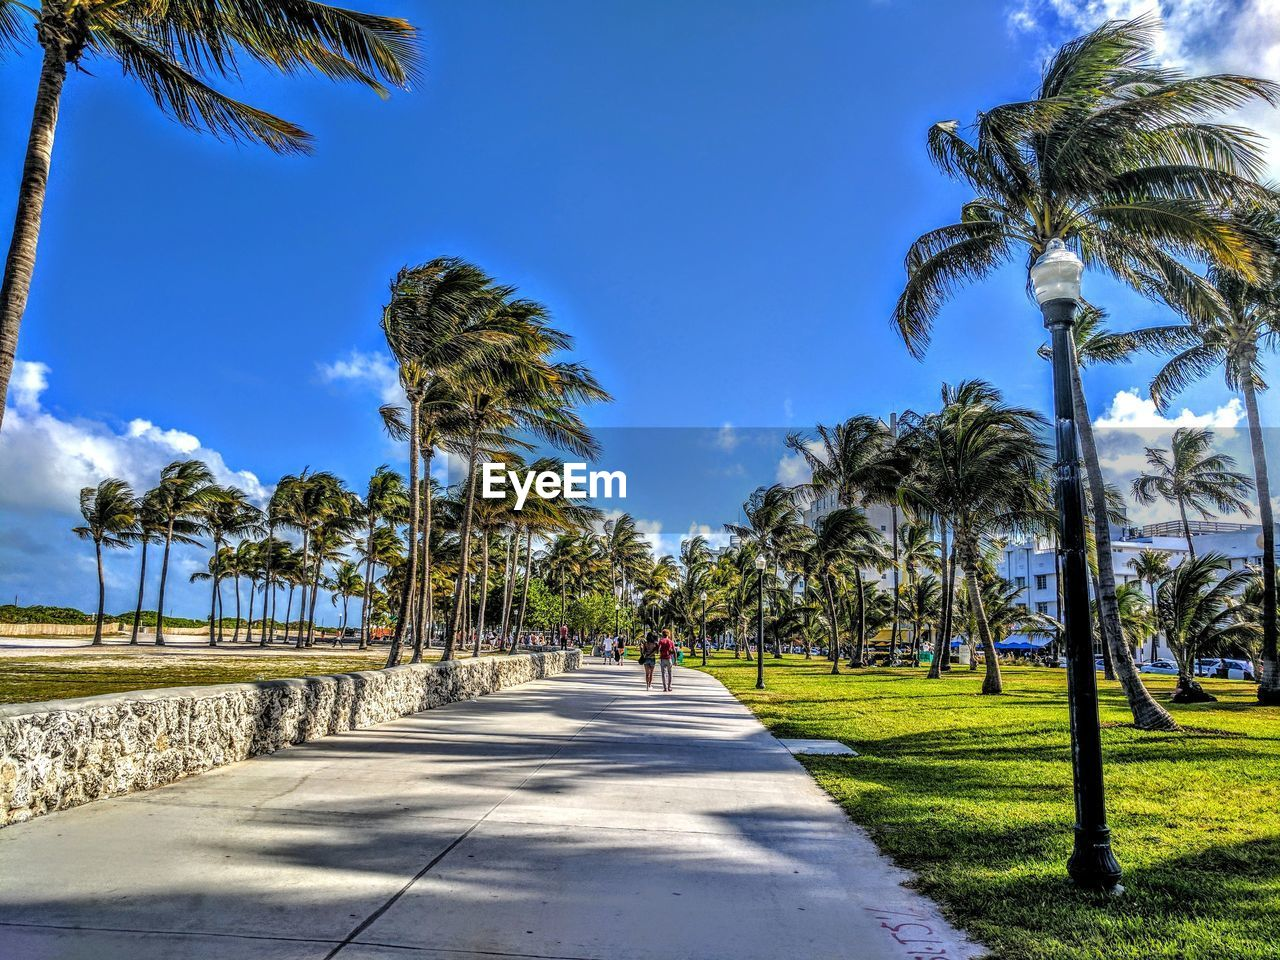 palm tree, tree, walking, day, sunlight, the way forward, growth, real people, shadow, sky, nature, road, outdoors, blue, tranquil scene, scenics, tranquility, beauty in nature, tree trunk, full length, men, women, grass, one person, people